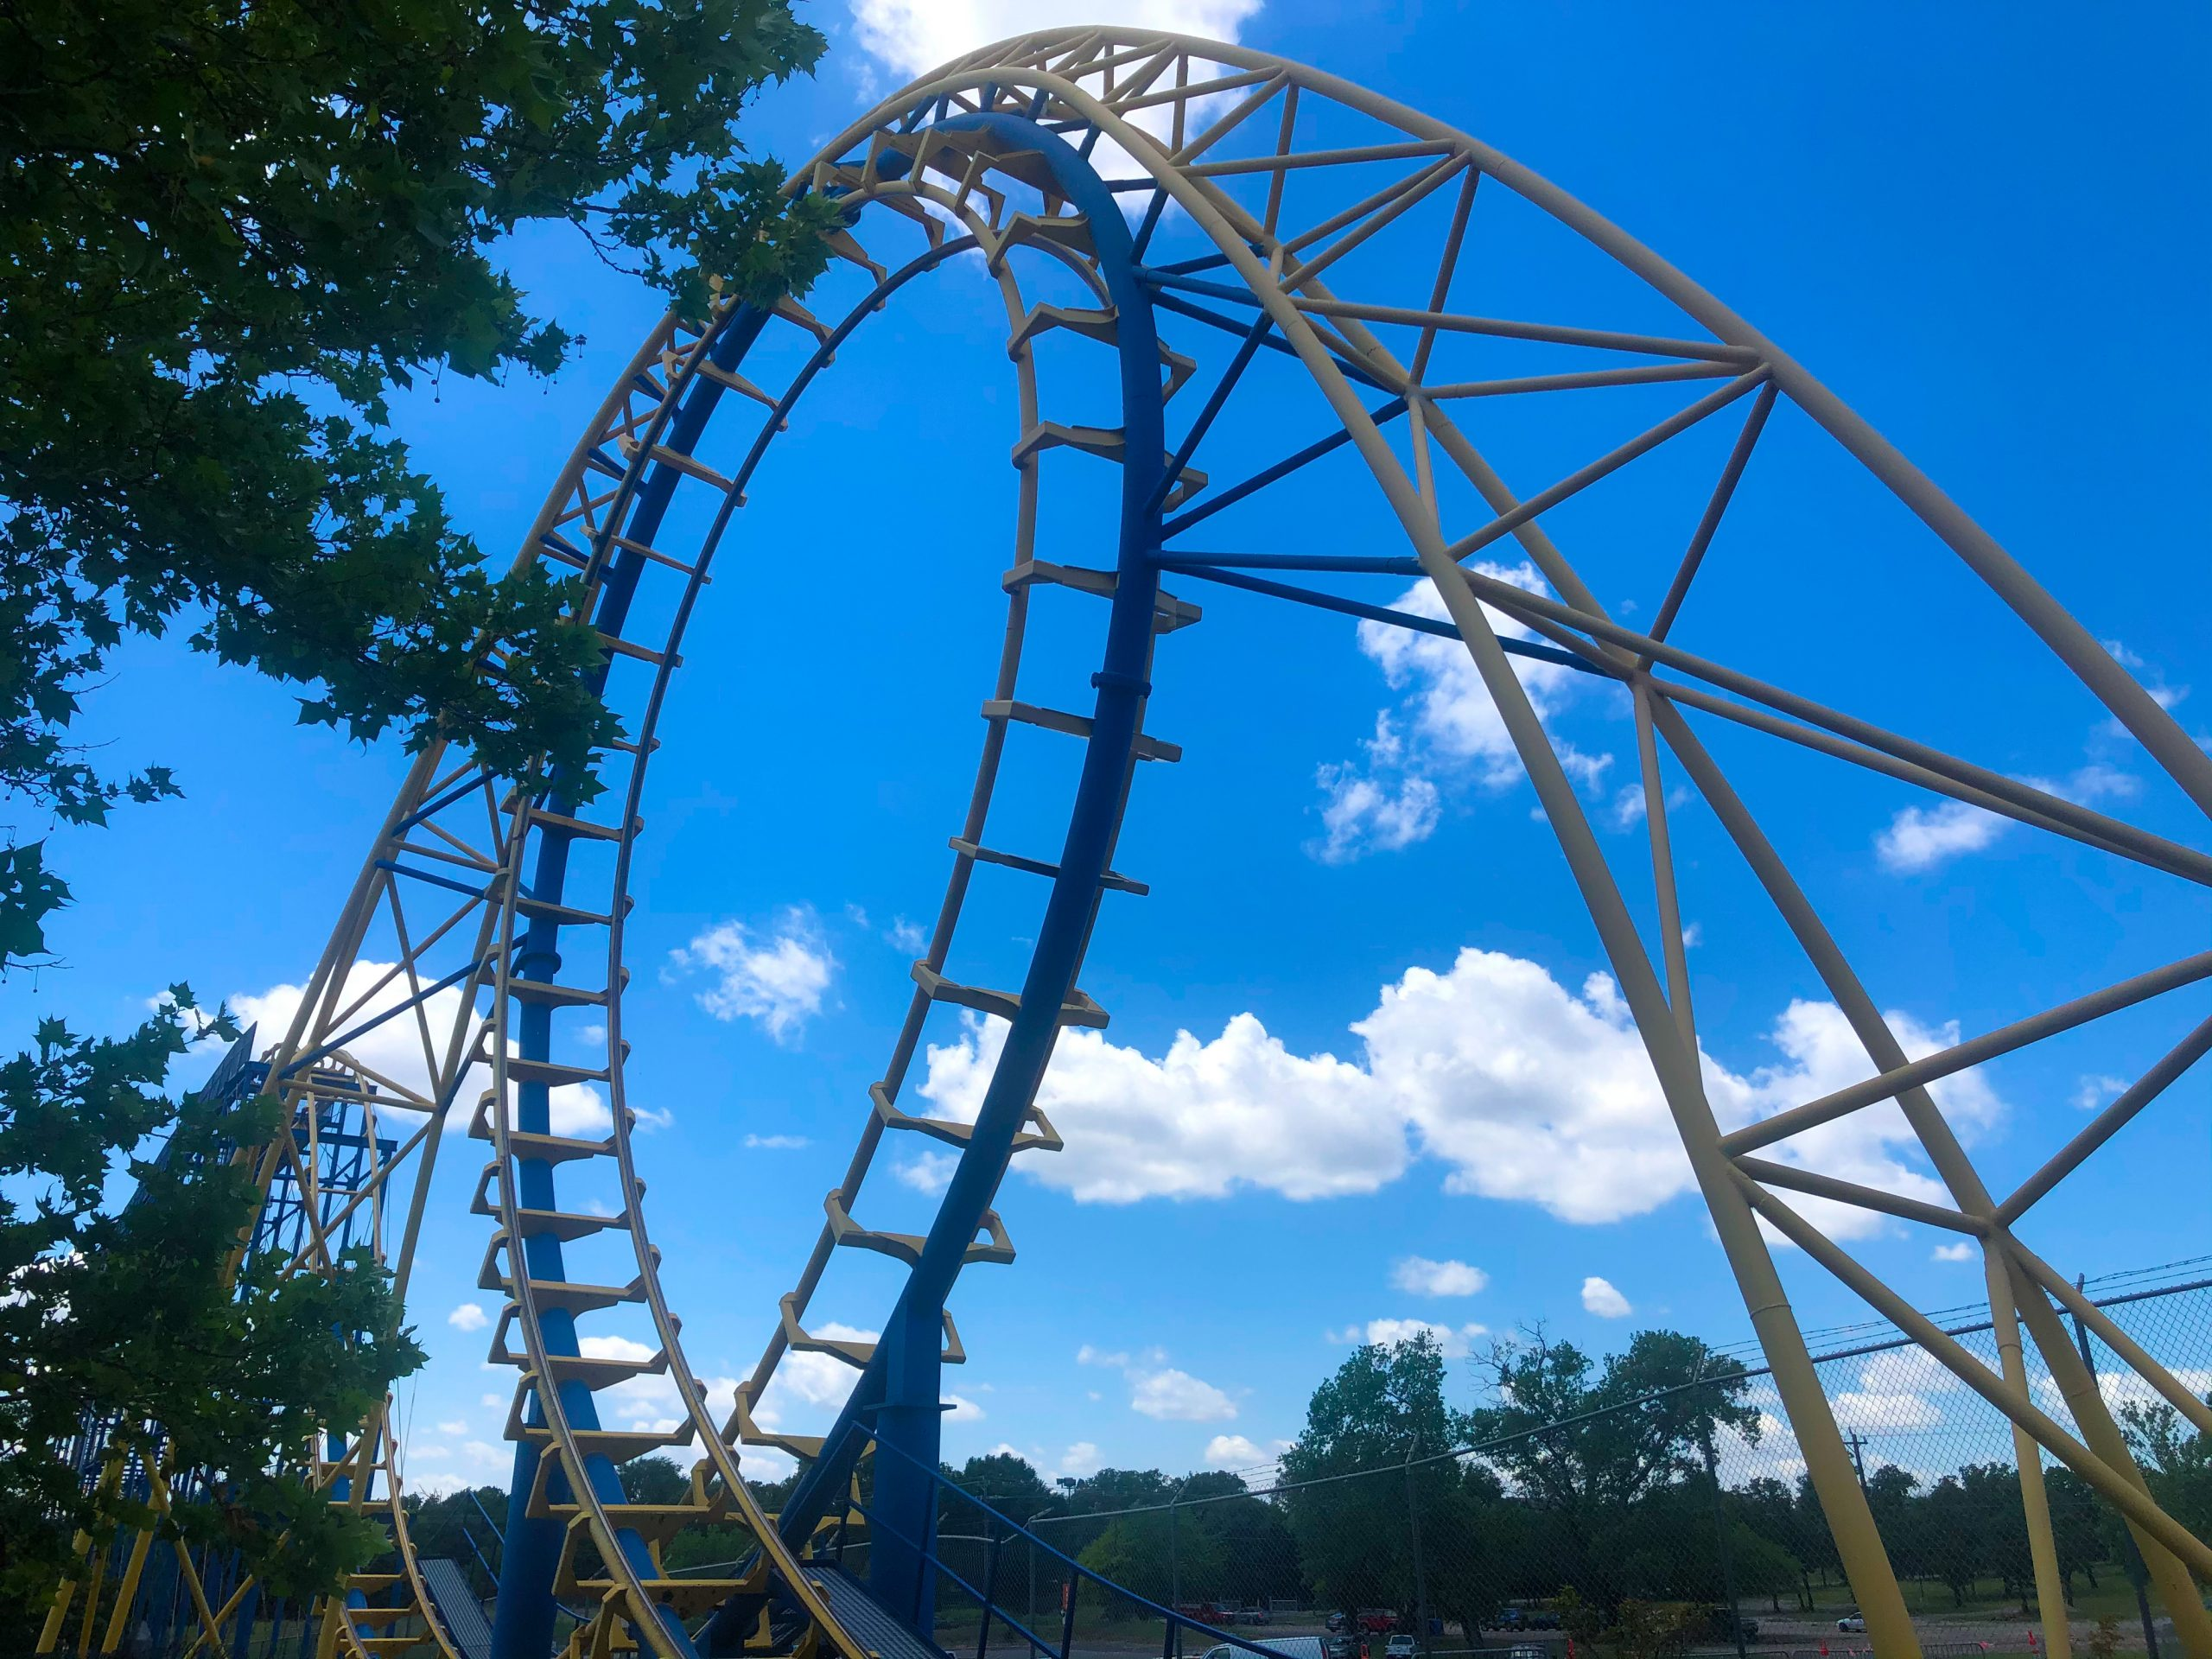 diamondback is an exhilerating ride that is sure to make you scream